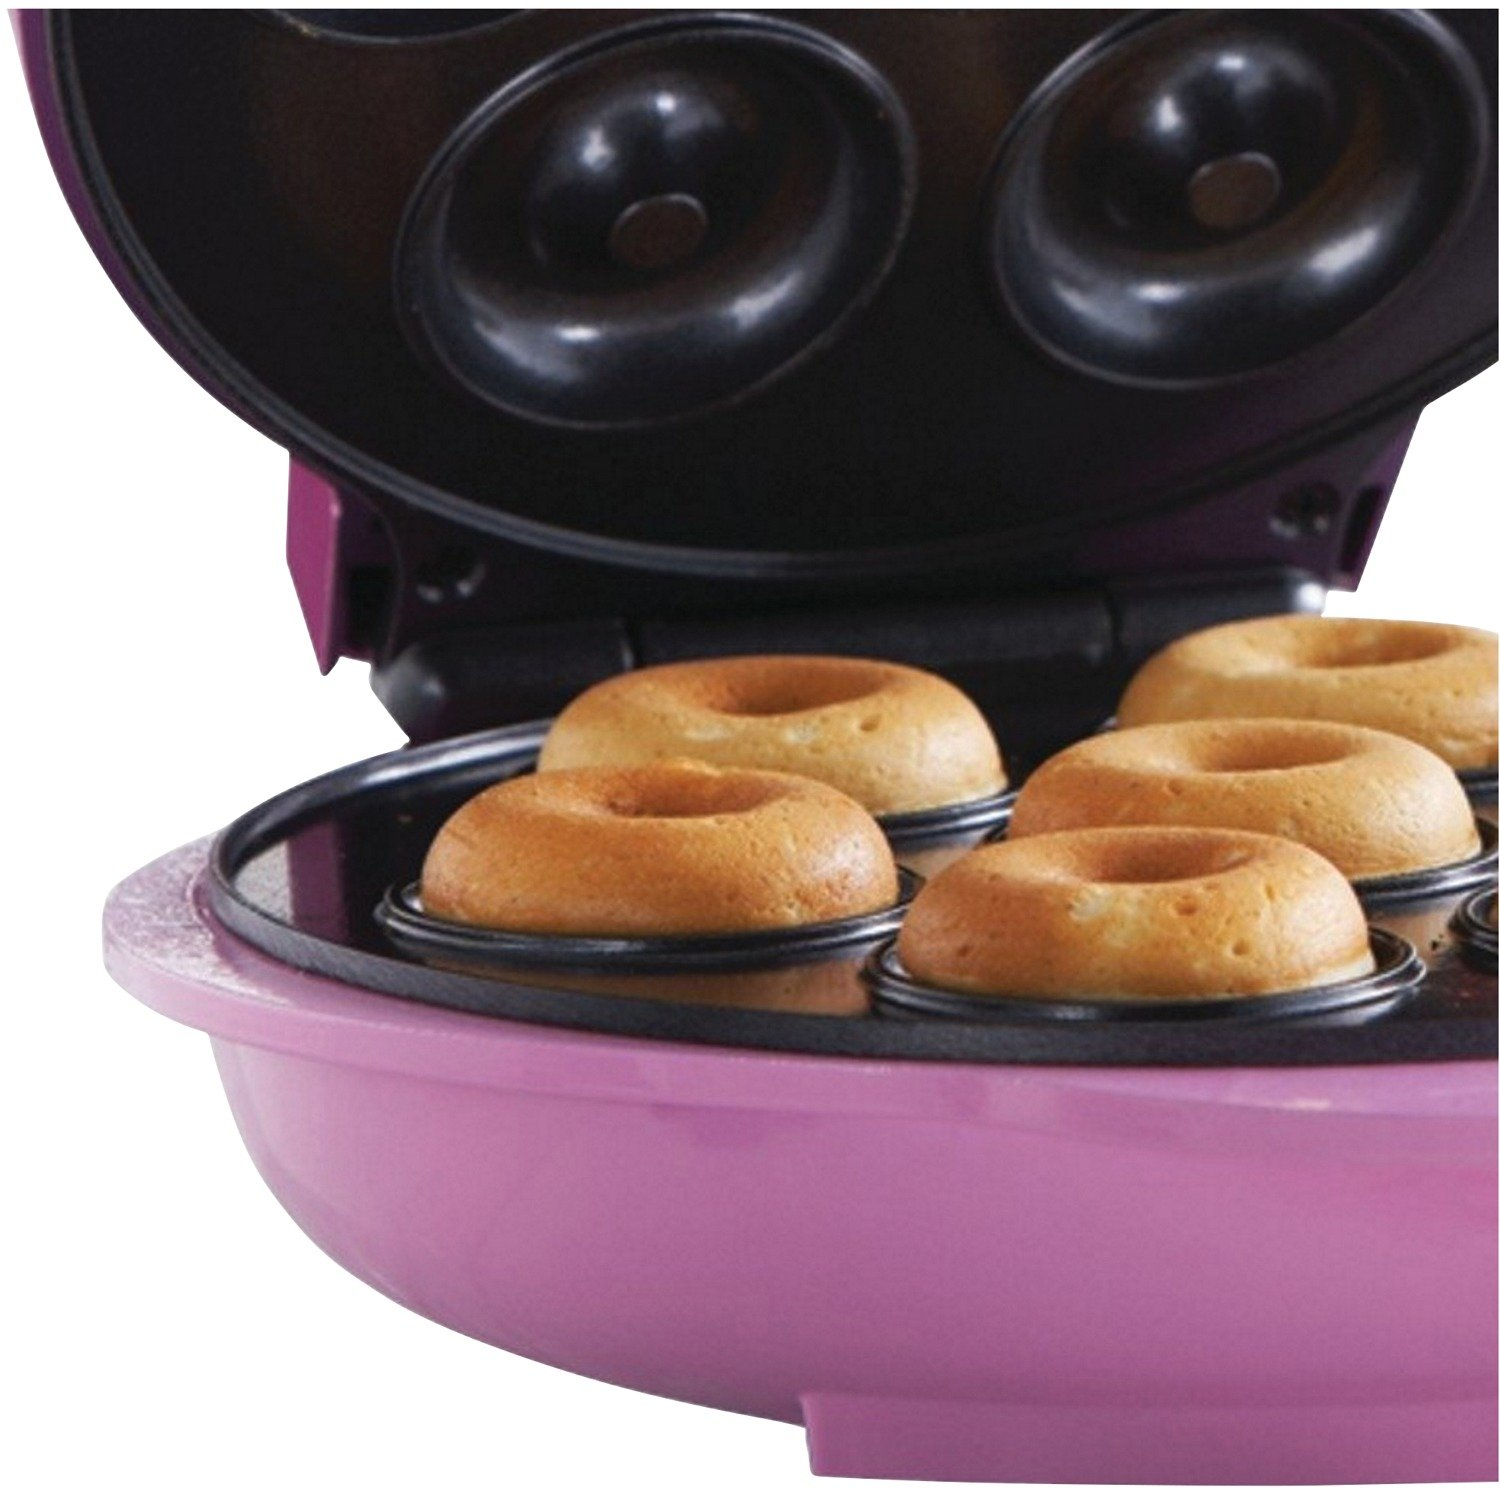 Brentwood TS-250 Non-Stick Mini Donut Maker Machine, Pink by Brentwood (Image #6)